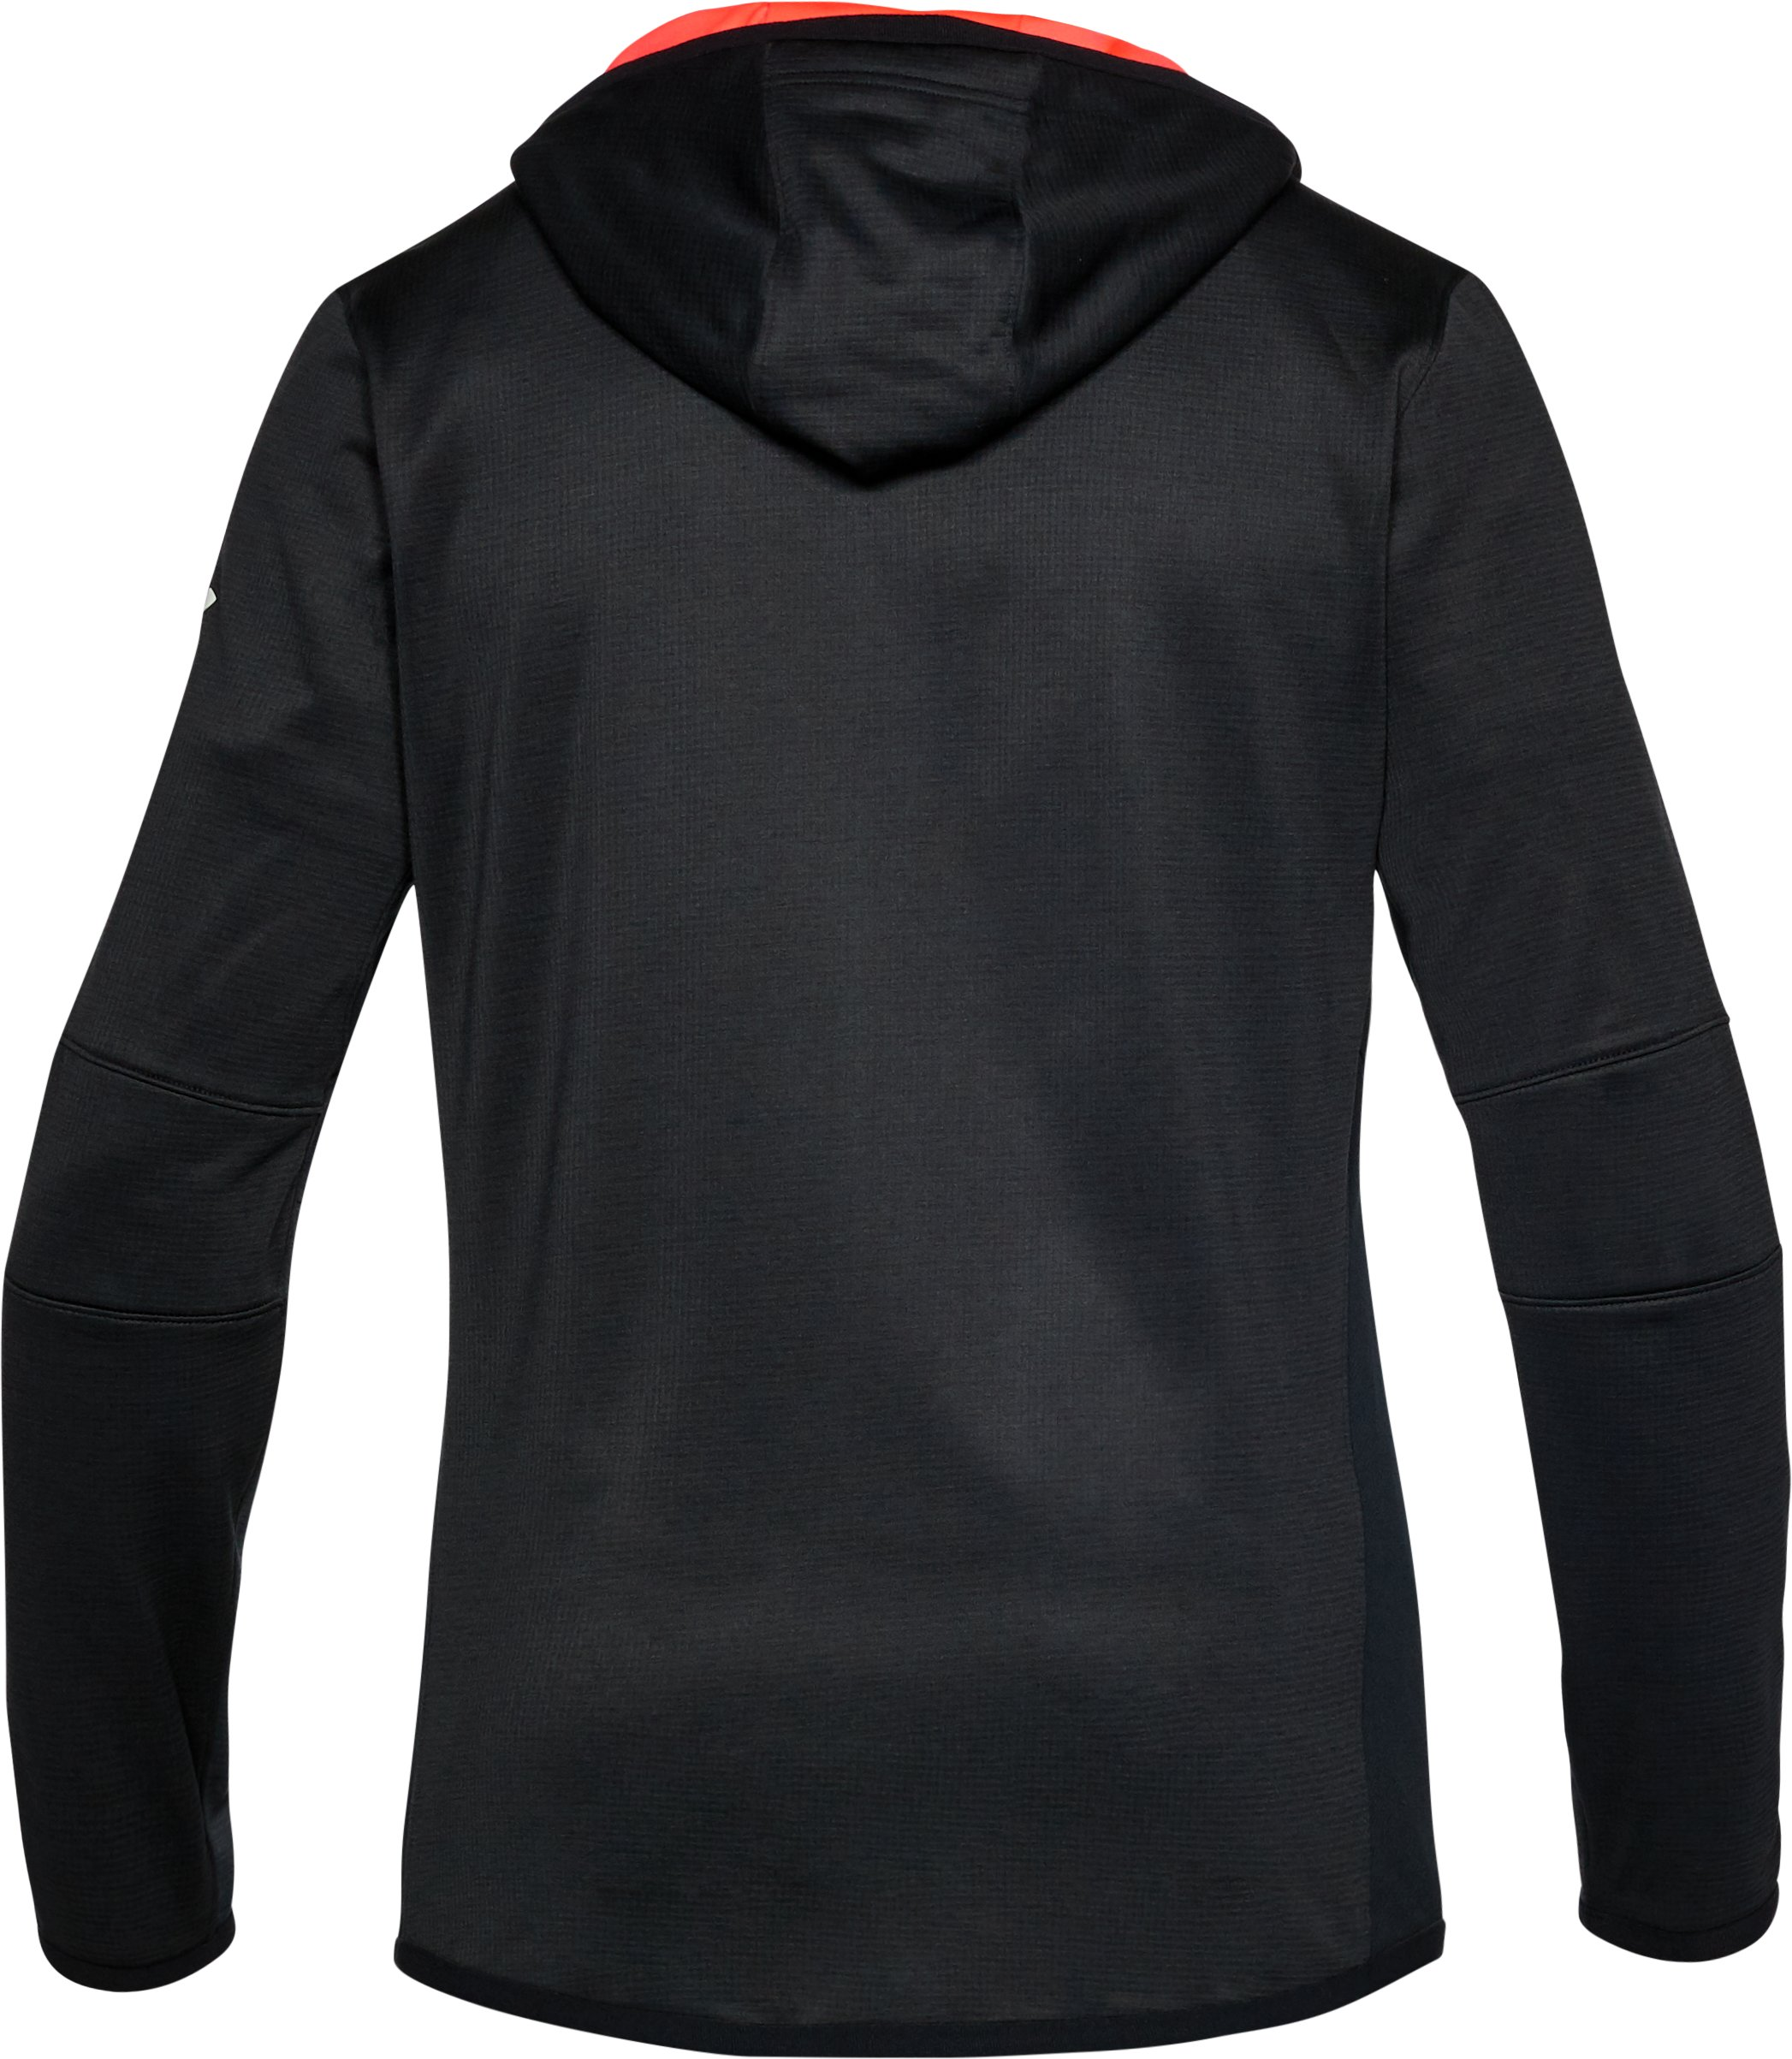 Men's ColdGear® Reactor Fleece Full Zip Hoodie, ANTHRACITE,